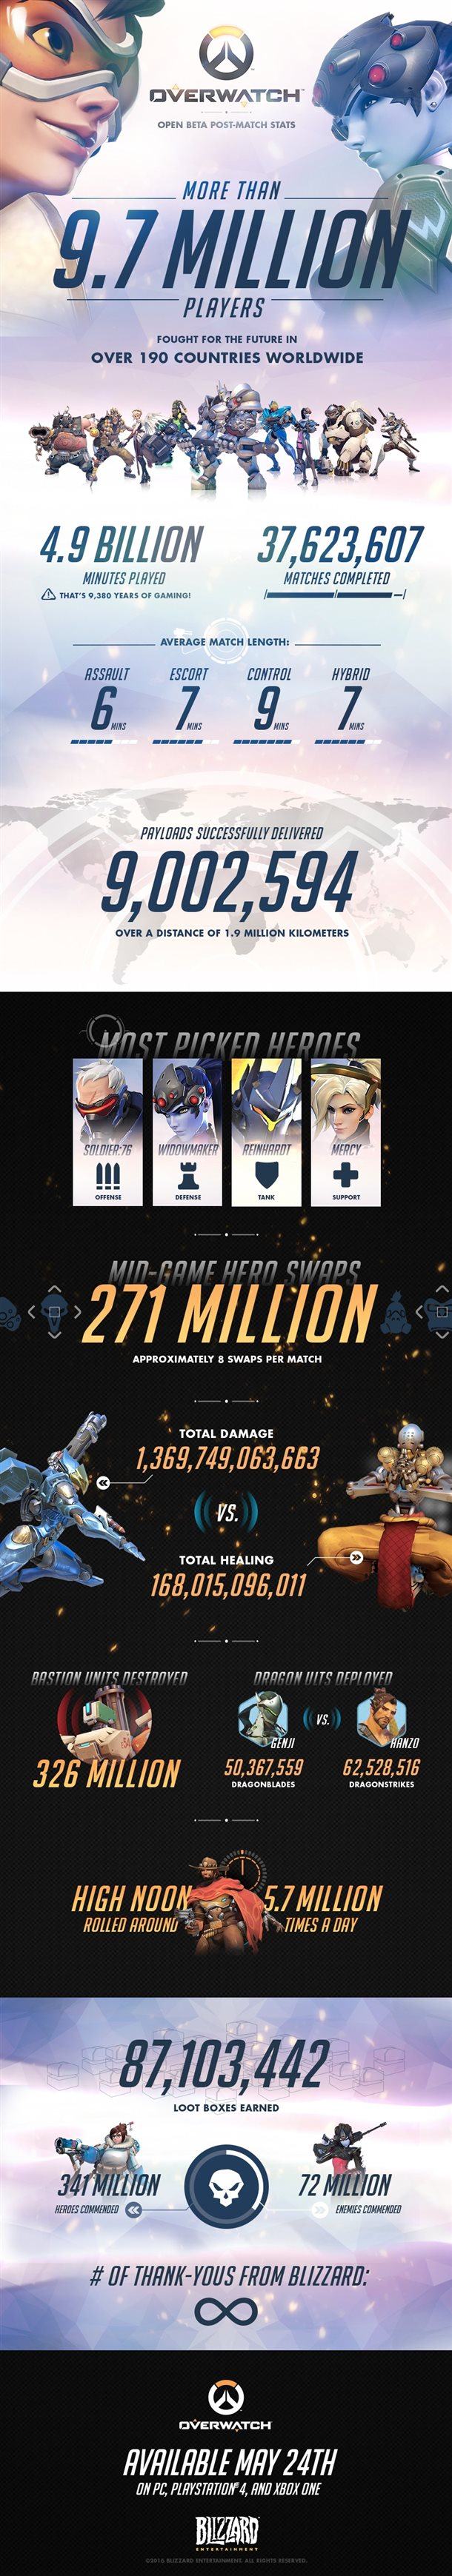 Vamers - FYI - Gaming - Overwatch Open Beta Stats Are Impressive - Inforgraphic